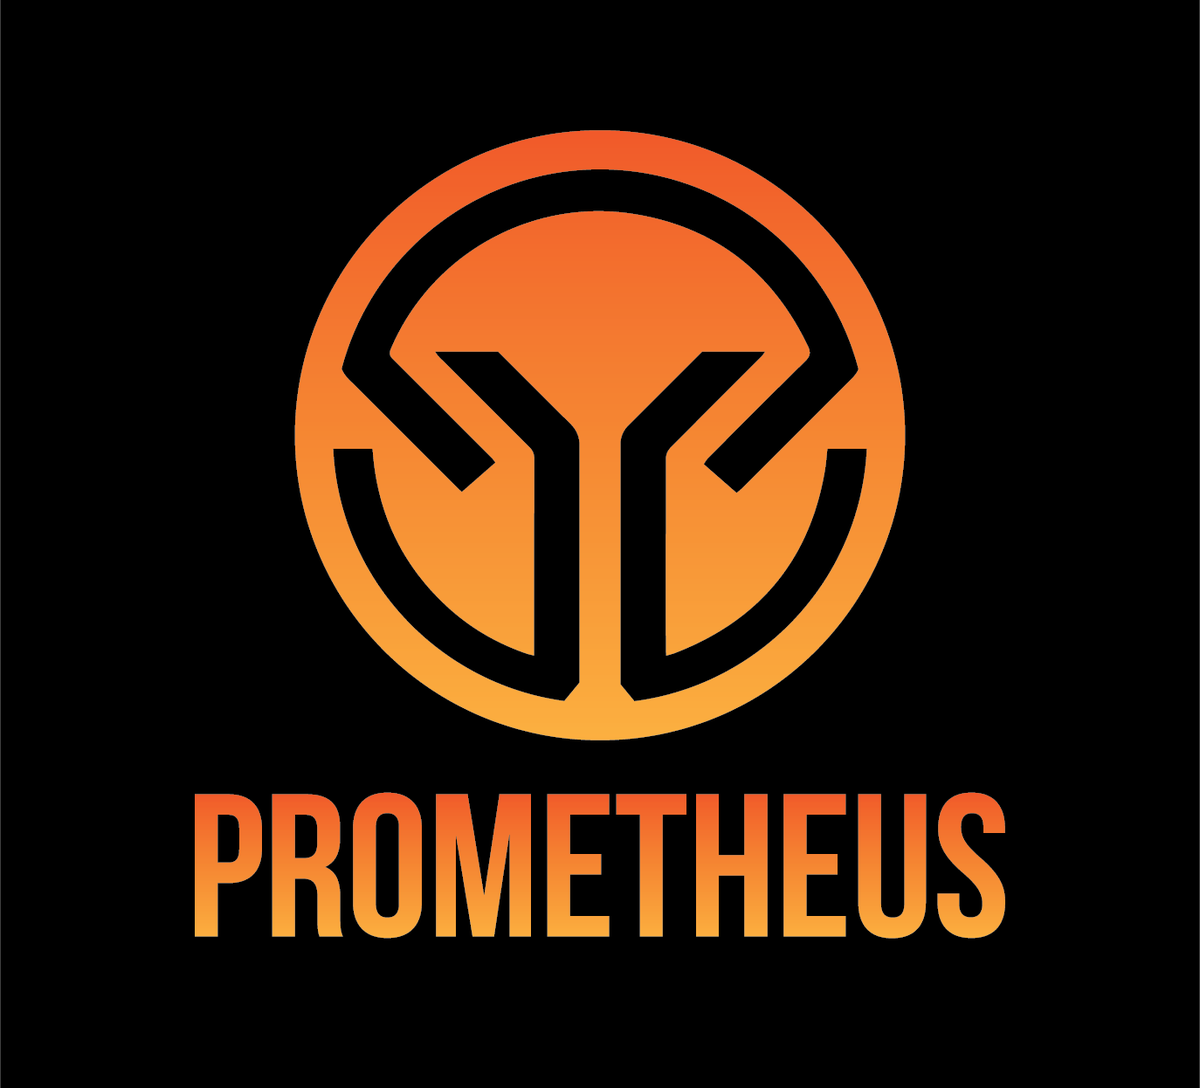 Excited to kickoff Prometheus, our project to develop antibody drugs vs. tick- and rodent-borne emerging viruses that sicken people across the globe. Even sweeter: working with @LarryZeitlin, @ZABornholdt, @McLellan_Lab, @stevenbradfute, and others. @NIH. http://bit.ly/2CRM3OS